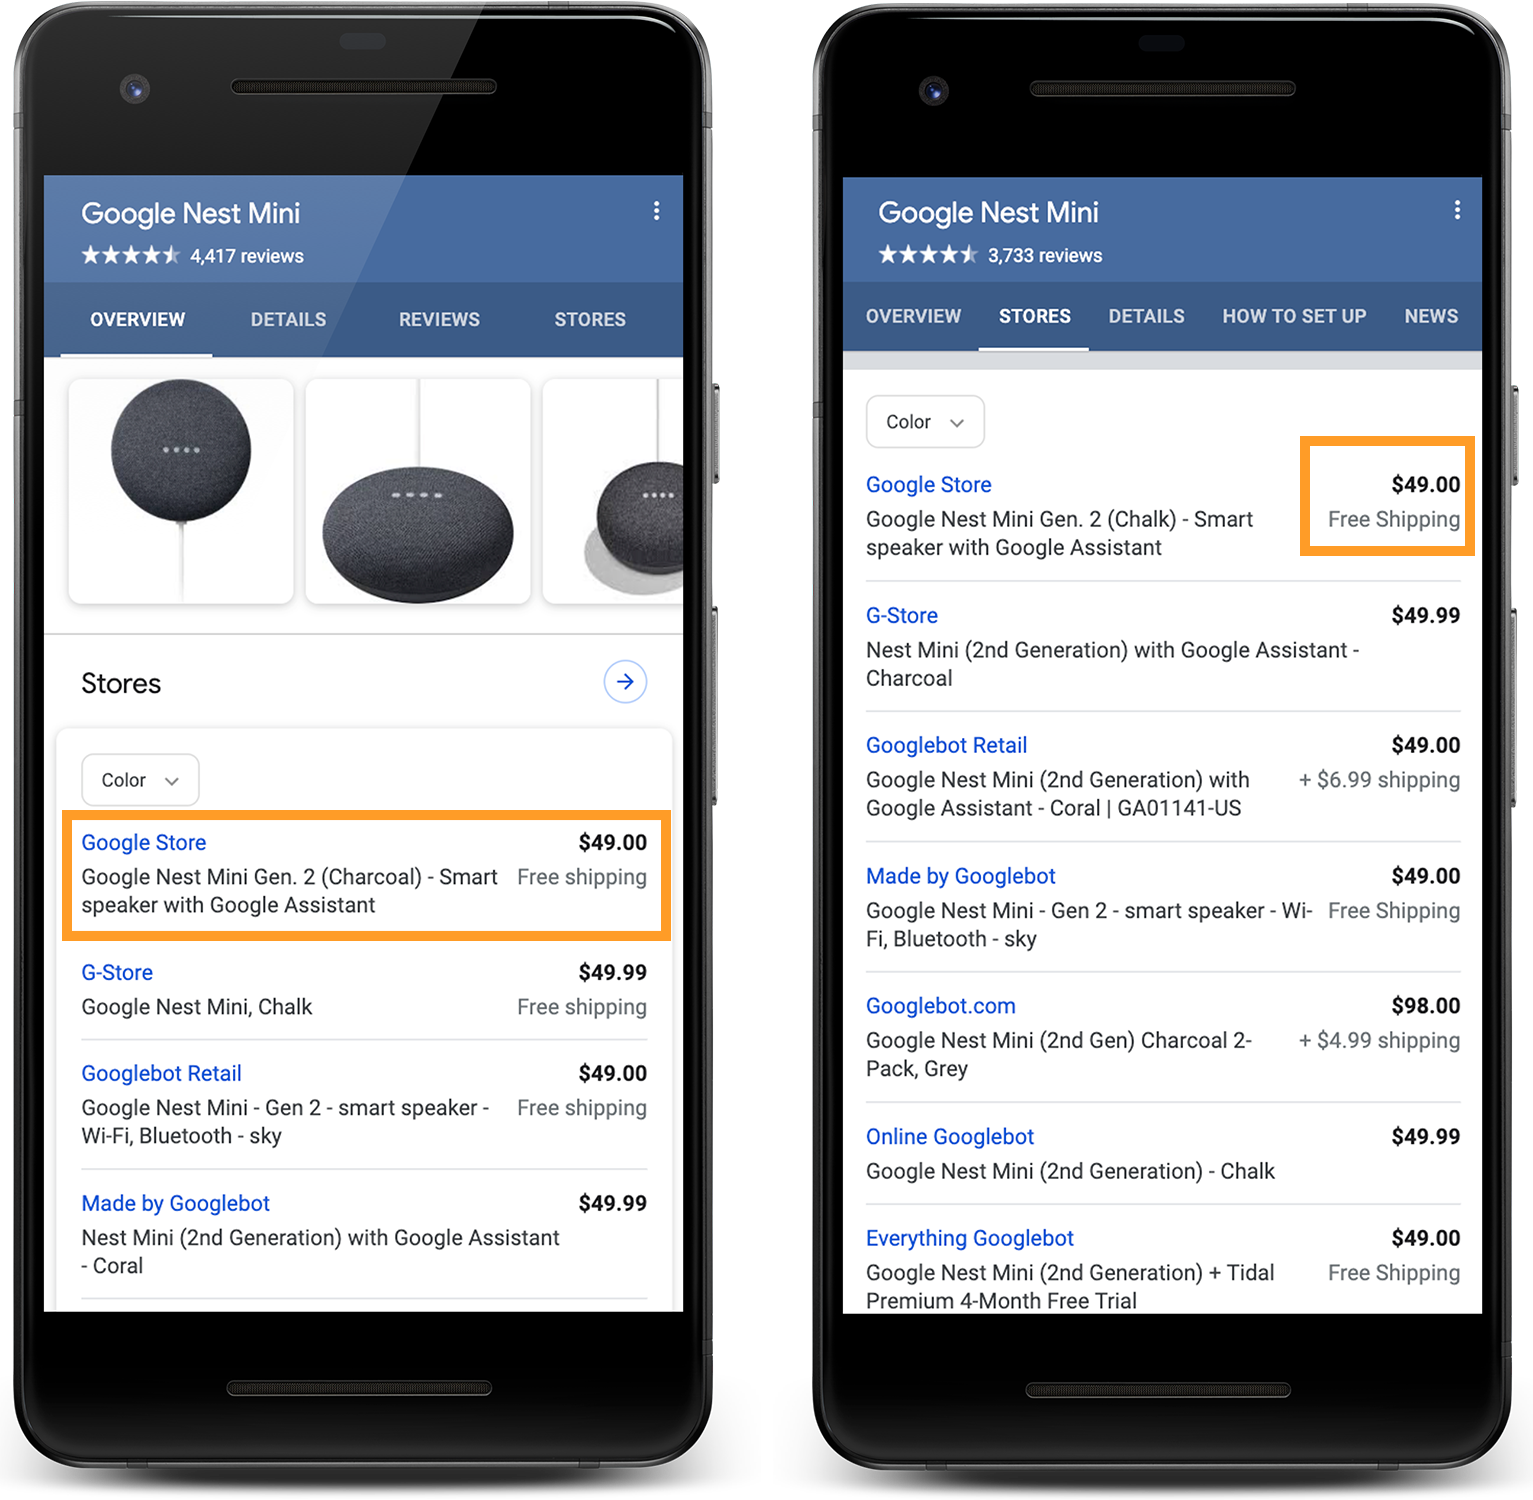 Shipping details in Search results